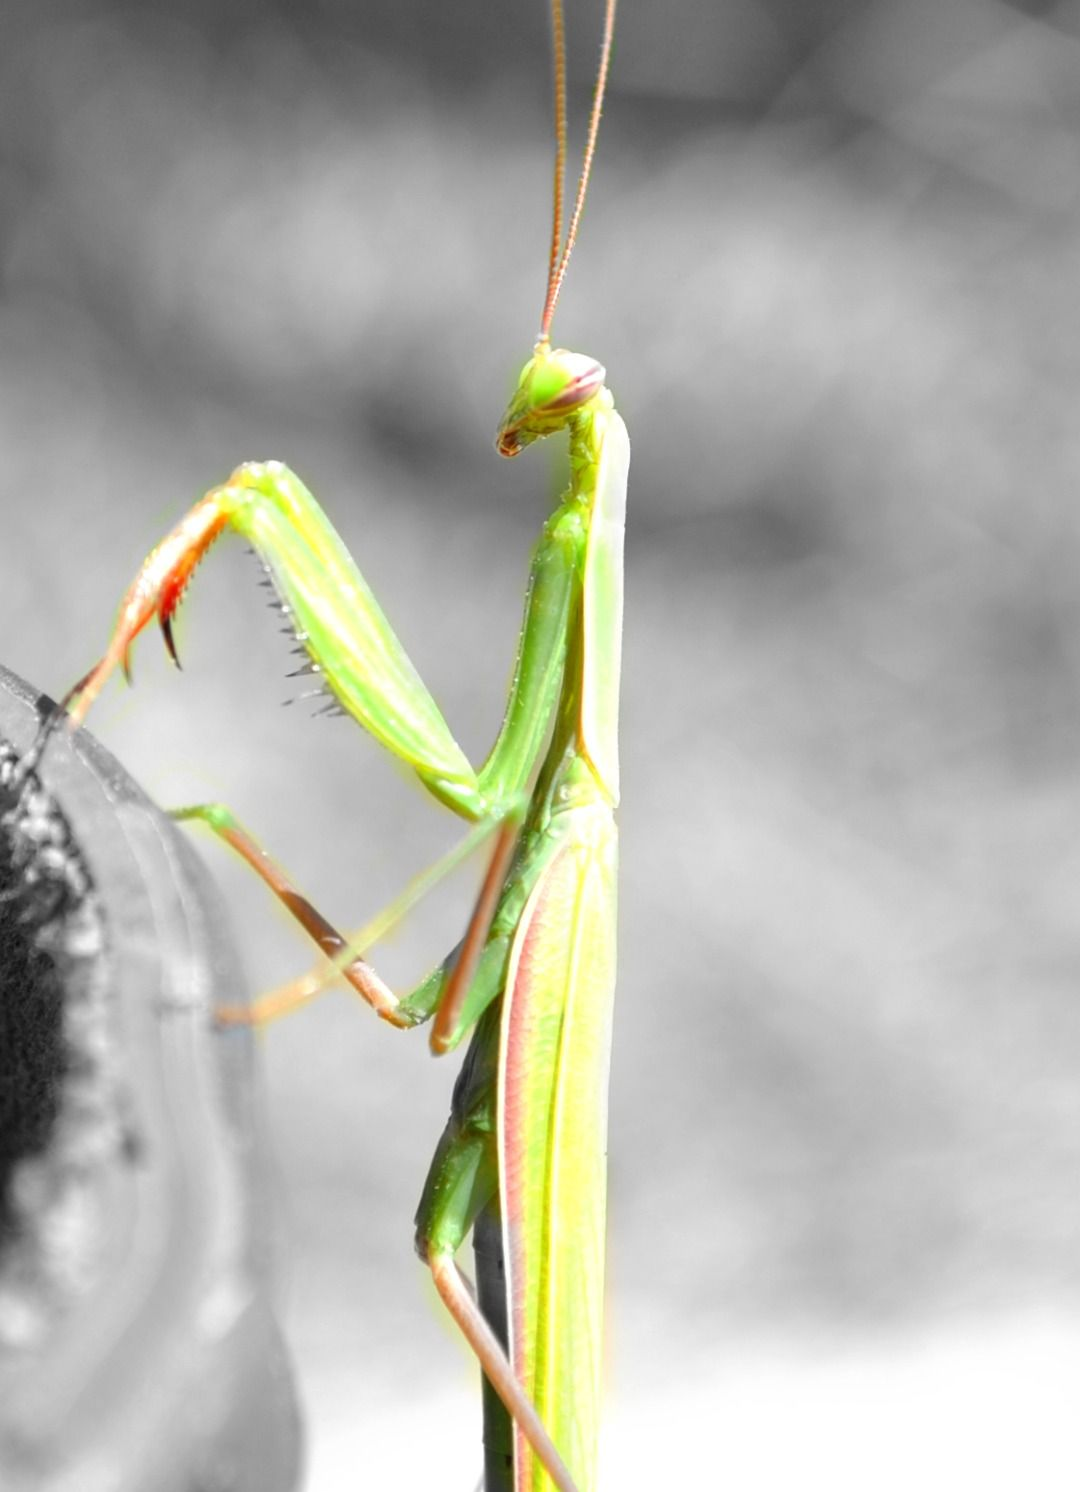 Pin By Carole Trese Swanson On Pictures Praying Mantis Country Critters Bugs And Insects